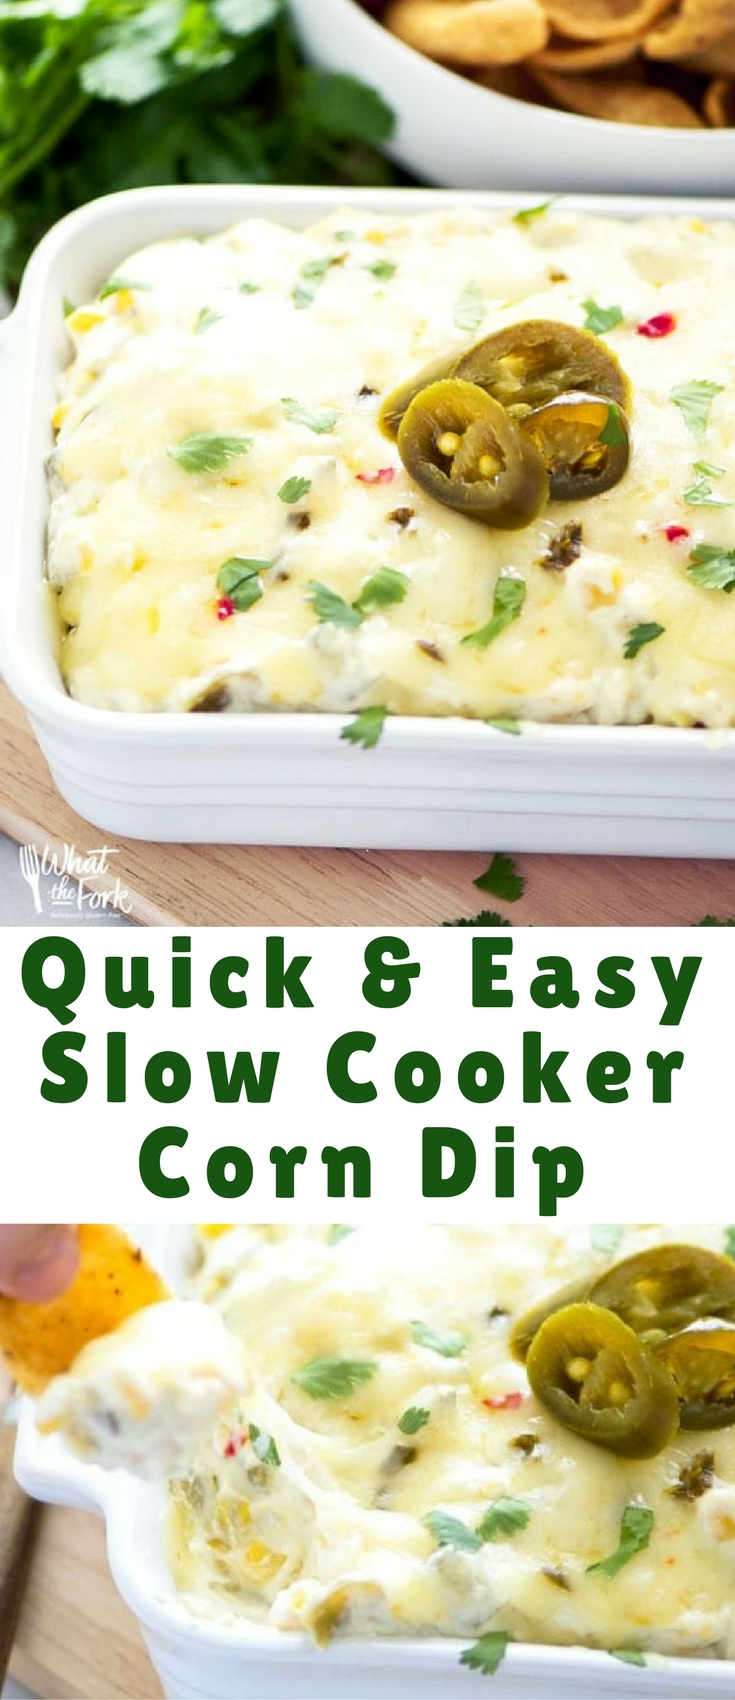 This super quick and easy slow cooker corn dip packs some major flavor with minimal ingredients – it's sure to be a hit at your next party!